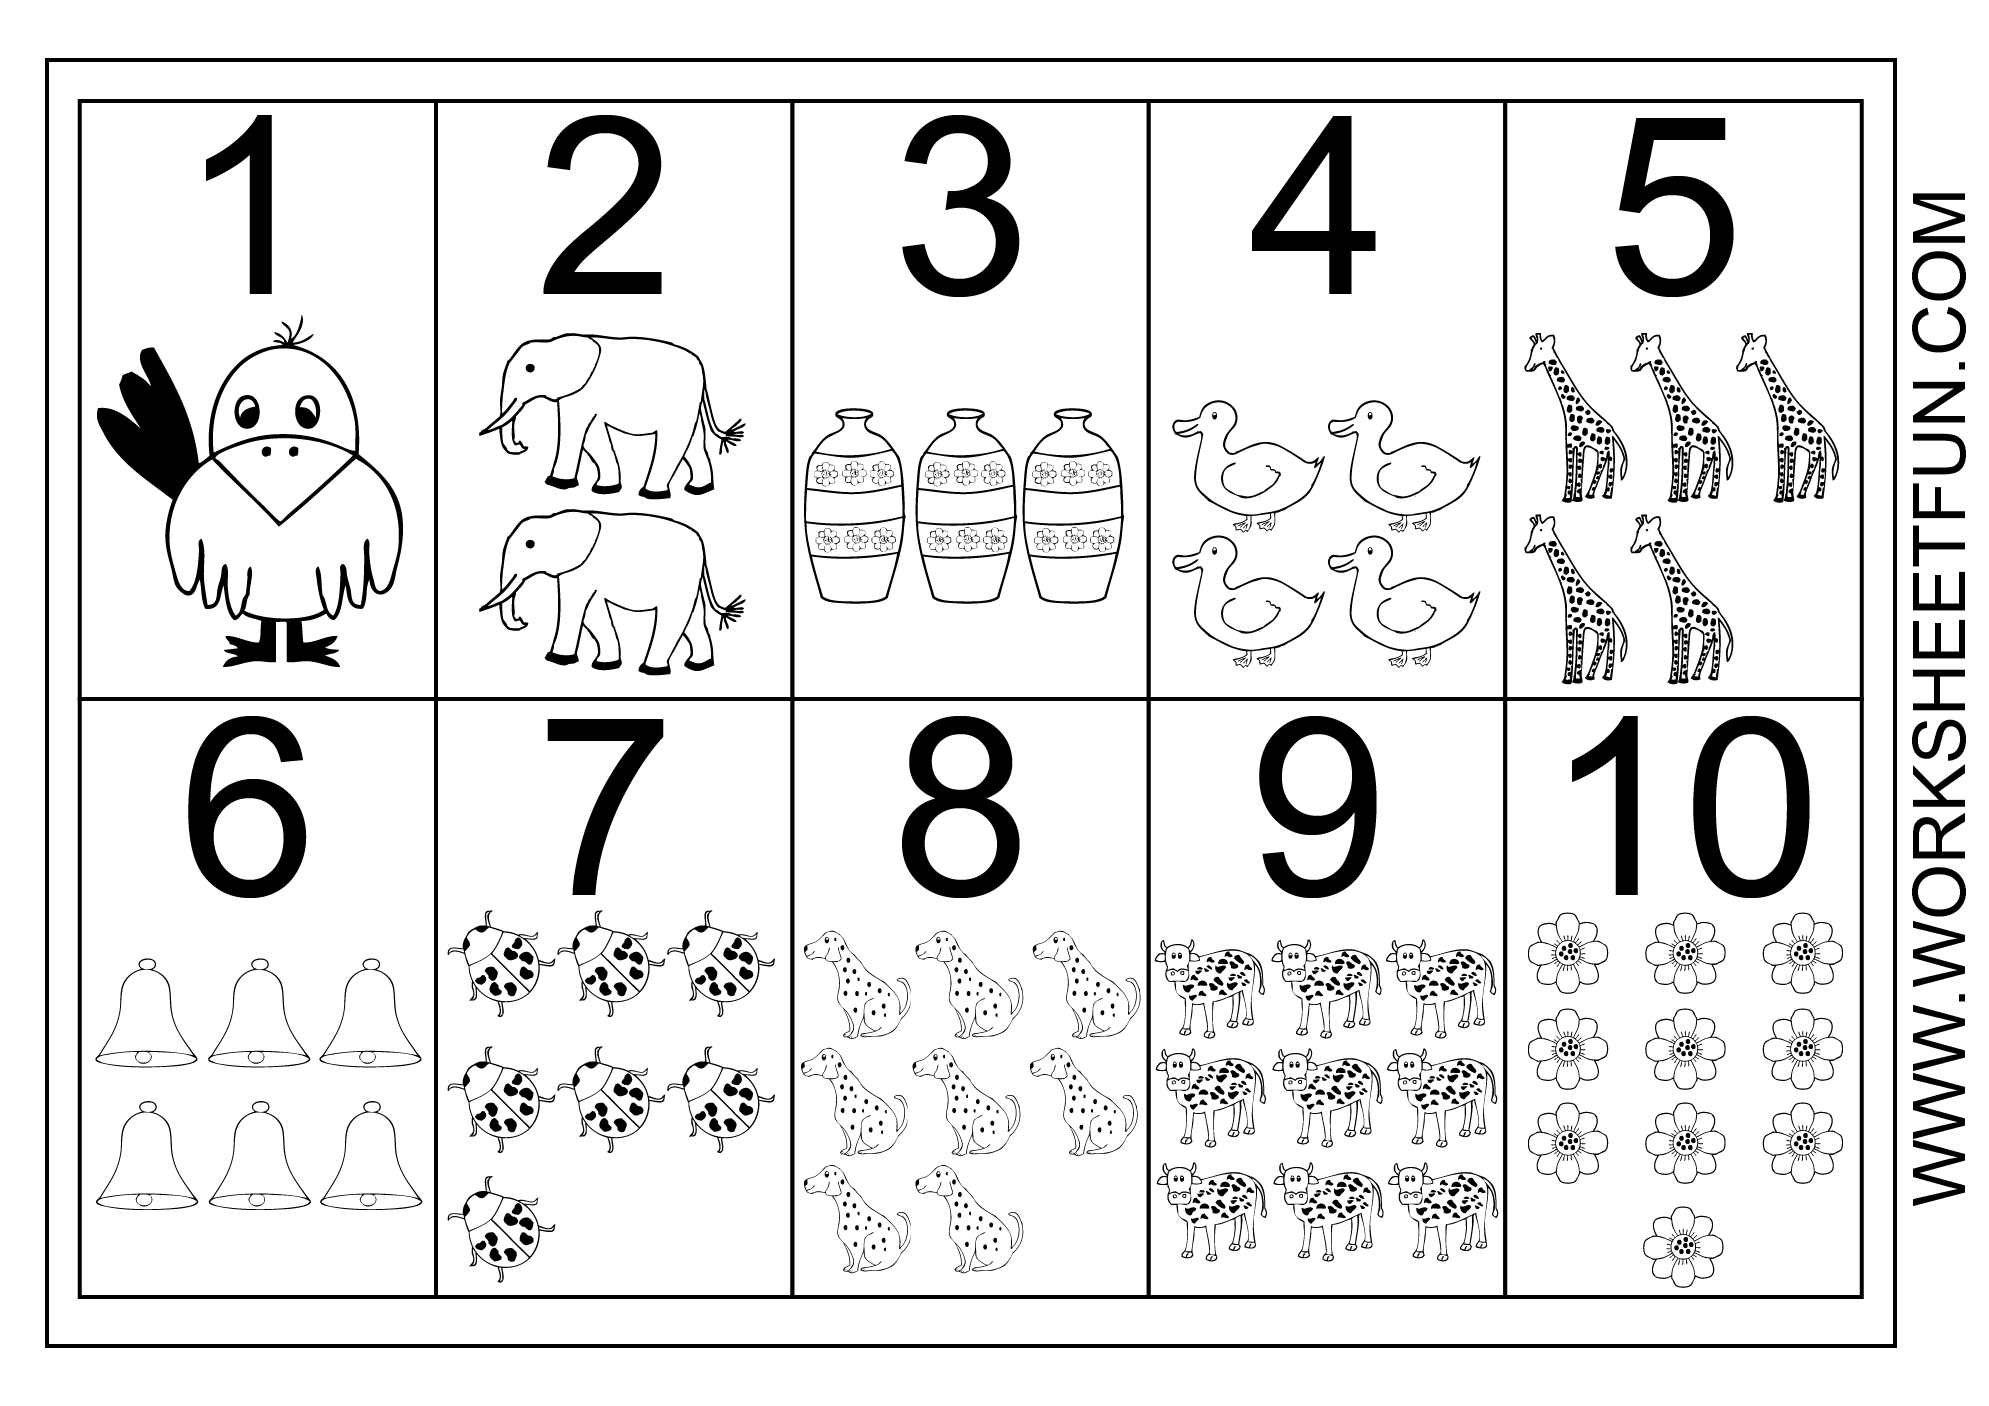 Picture Number Chart 1-10 | Printable Worksheets | Numbers Preschool - Free Printable Number Chart 1 10